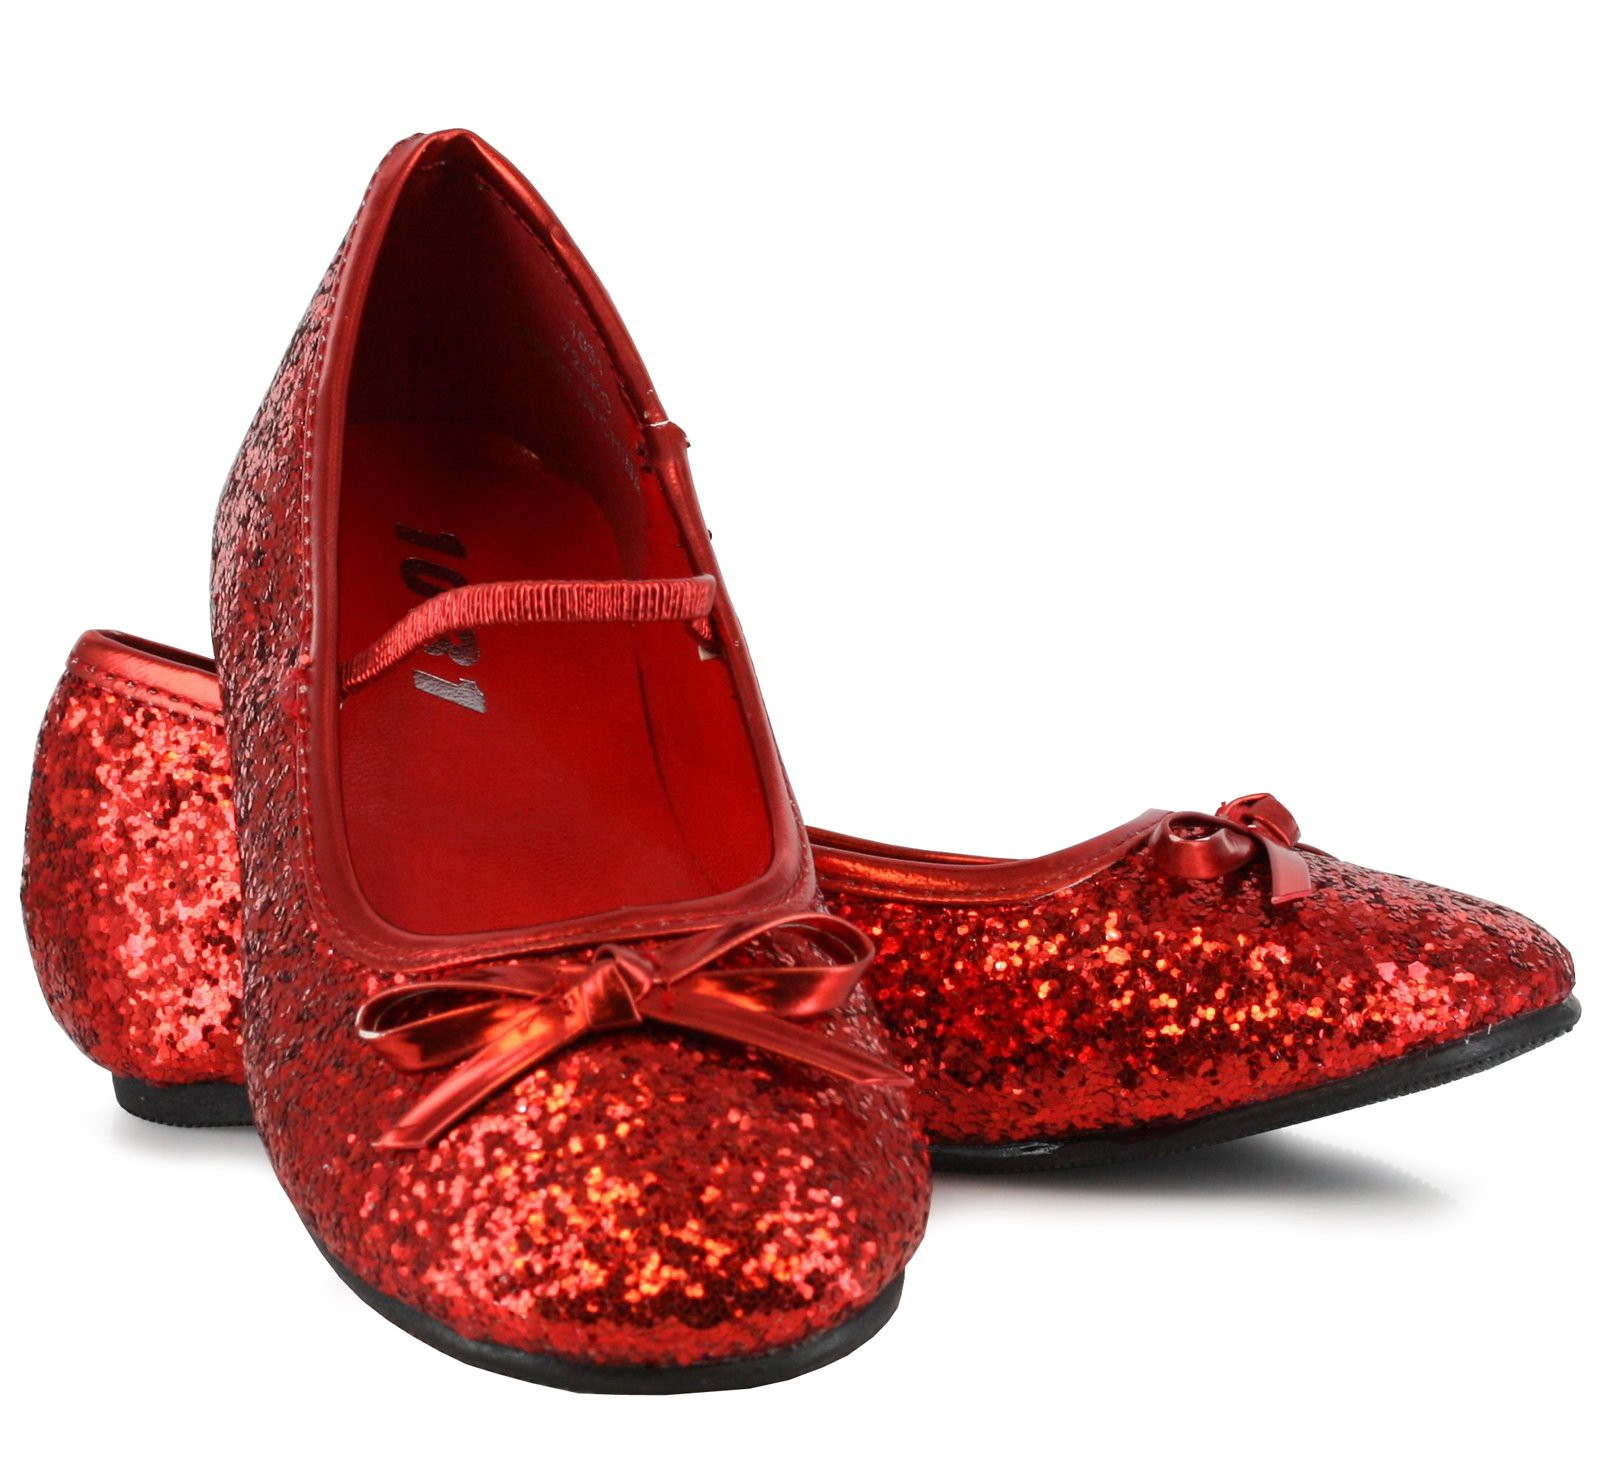 Dorothy Oz Red Shoes